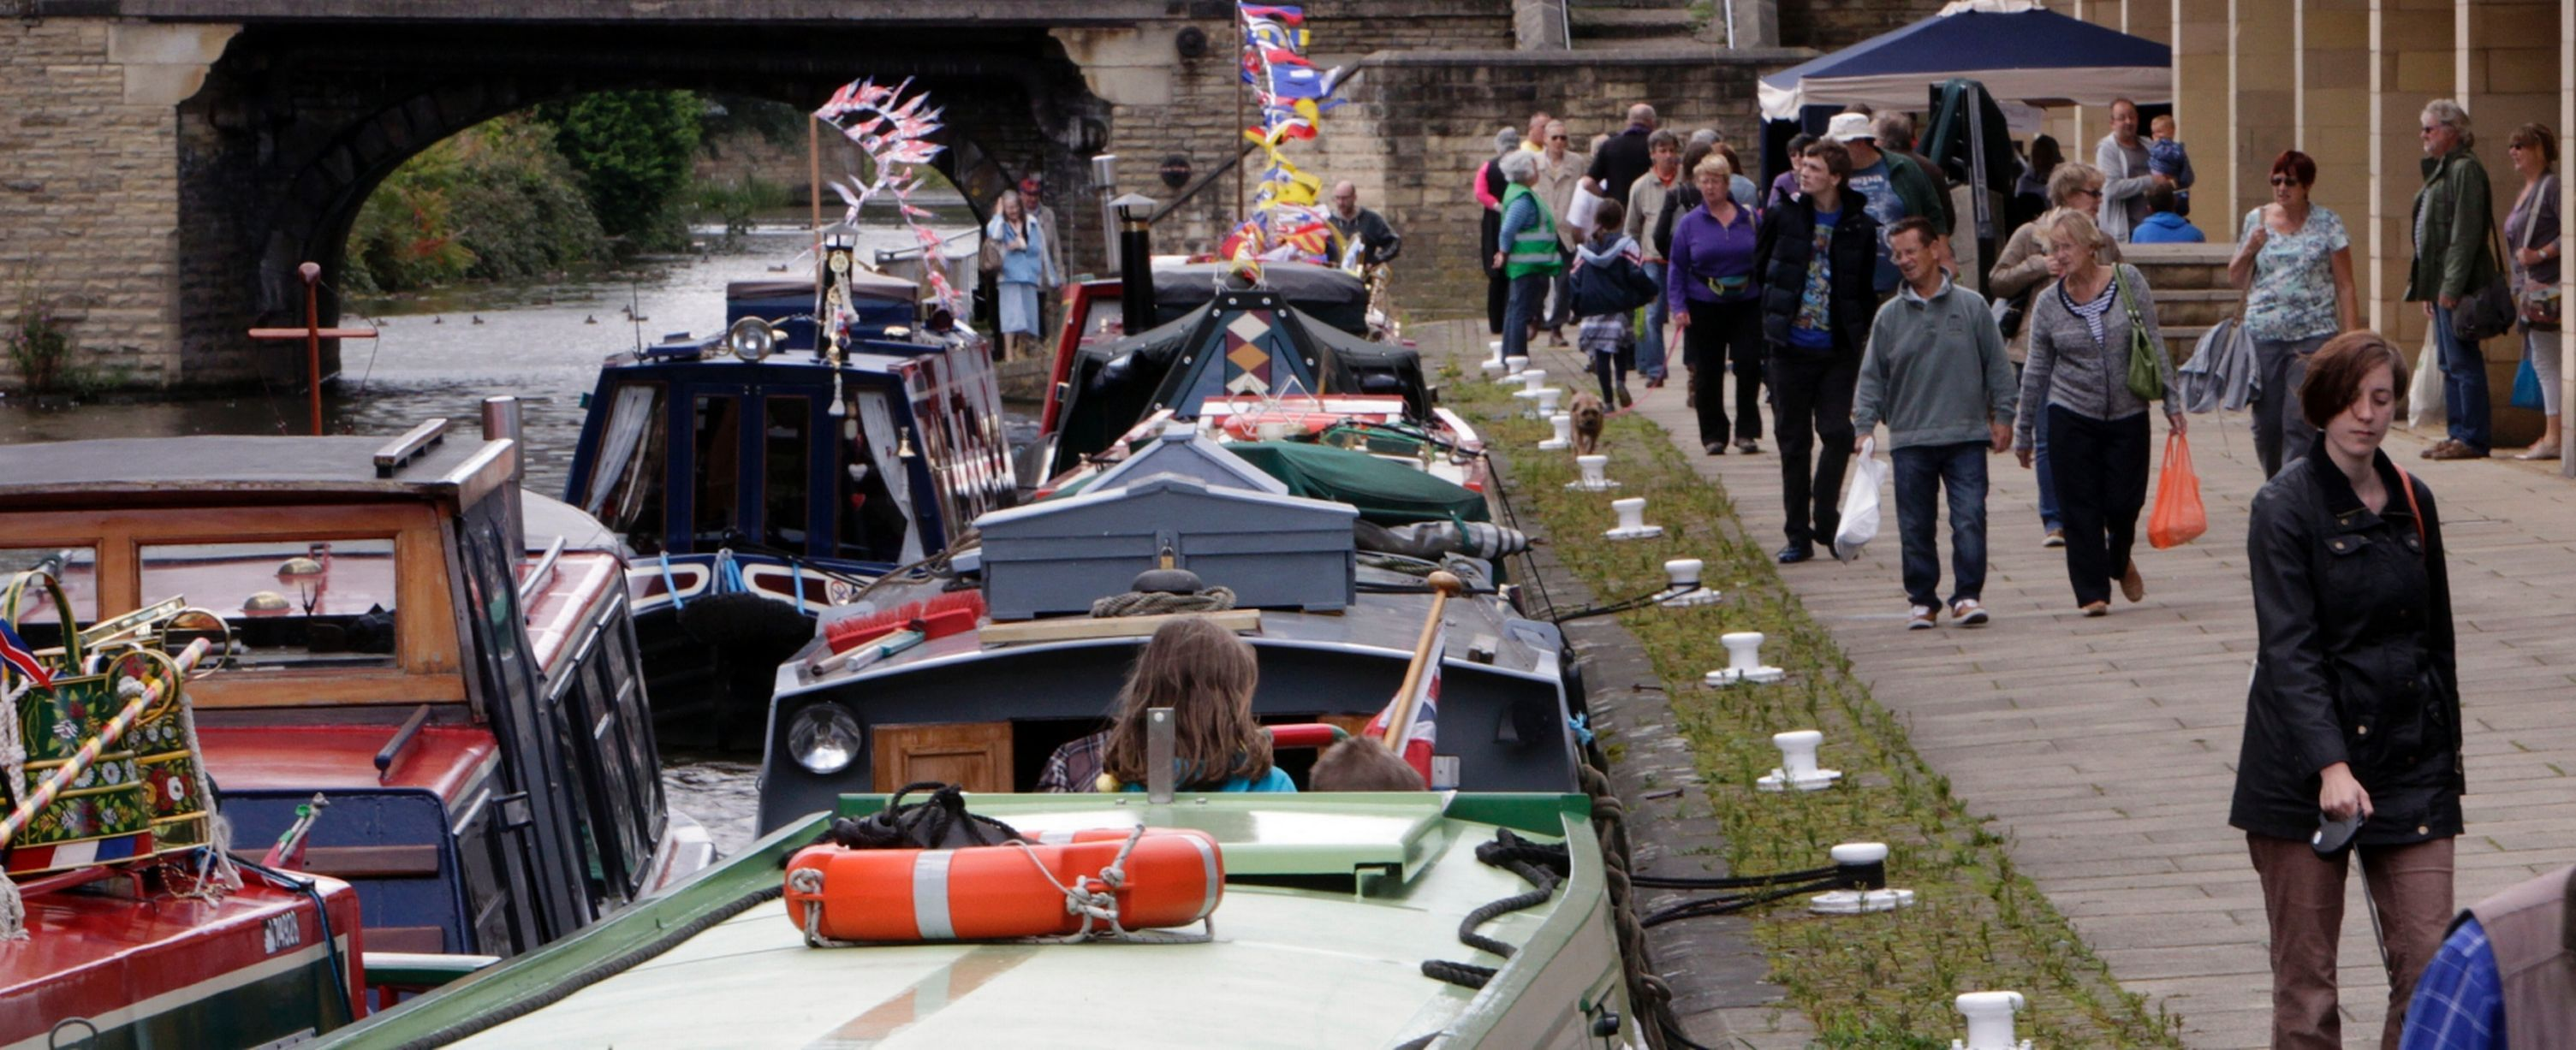 A photo from the Brighouse Canal and Music Festival 2014.